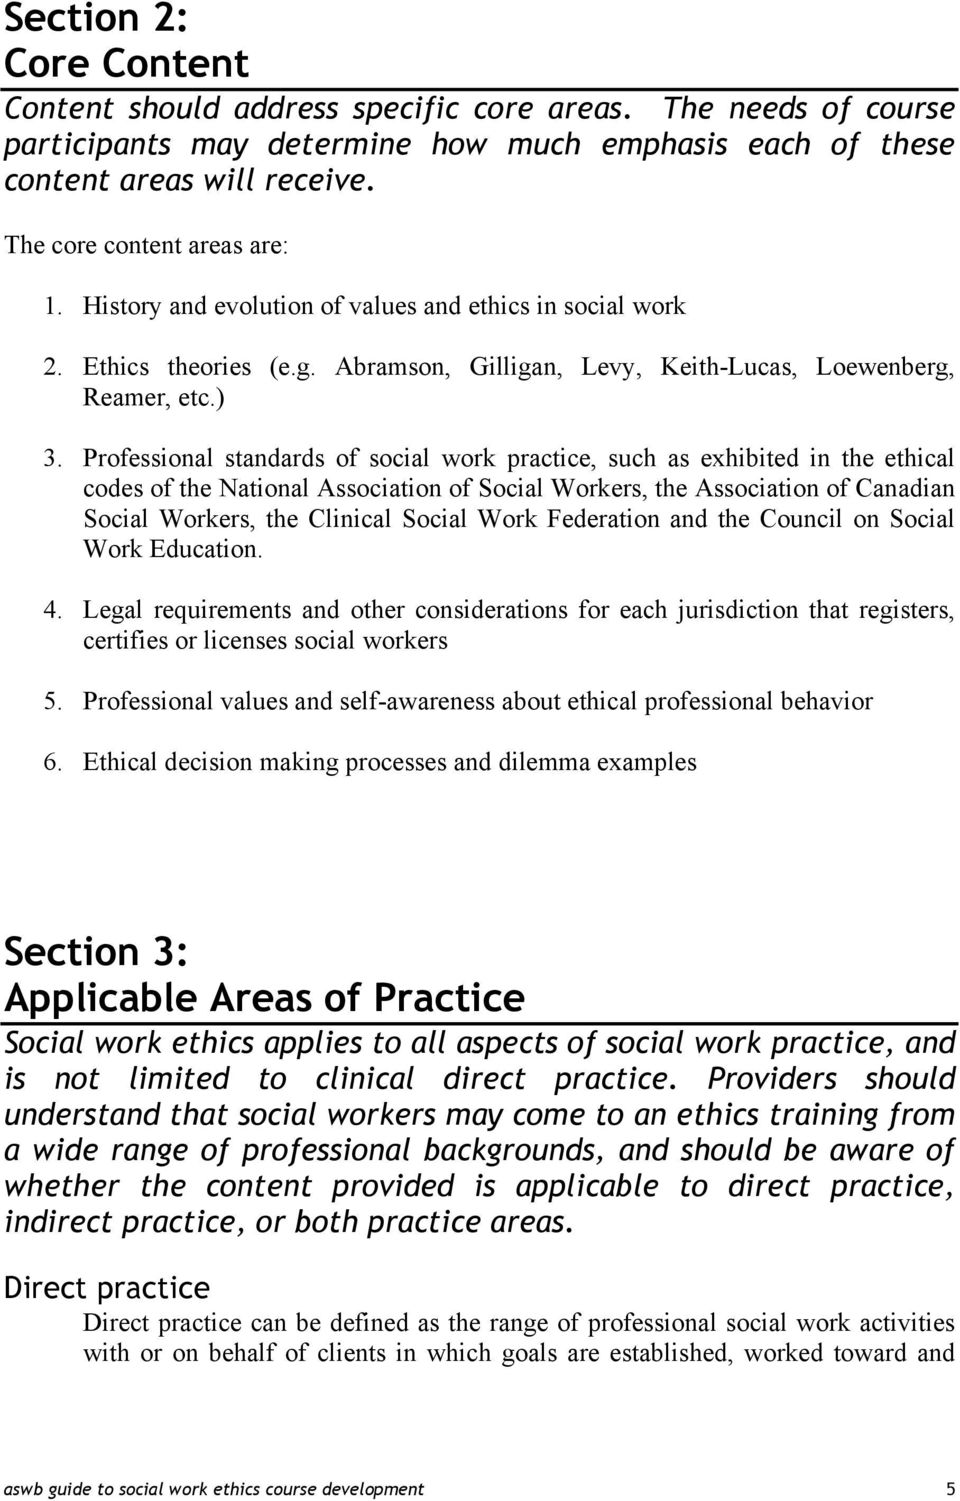 Professional standards of social work practice, such as exhibited in the ethical codes of the National Association of Social Workers, the Association of Canadian Social Workers, the Clinical Social